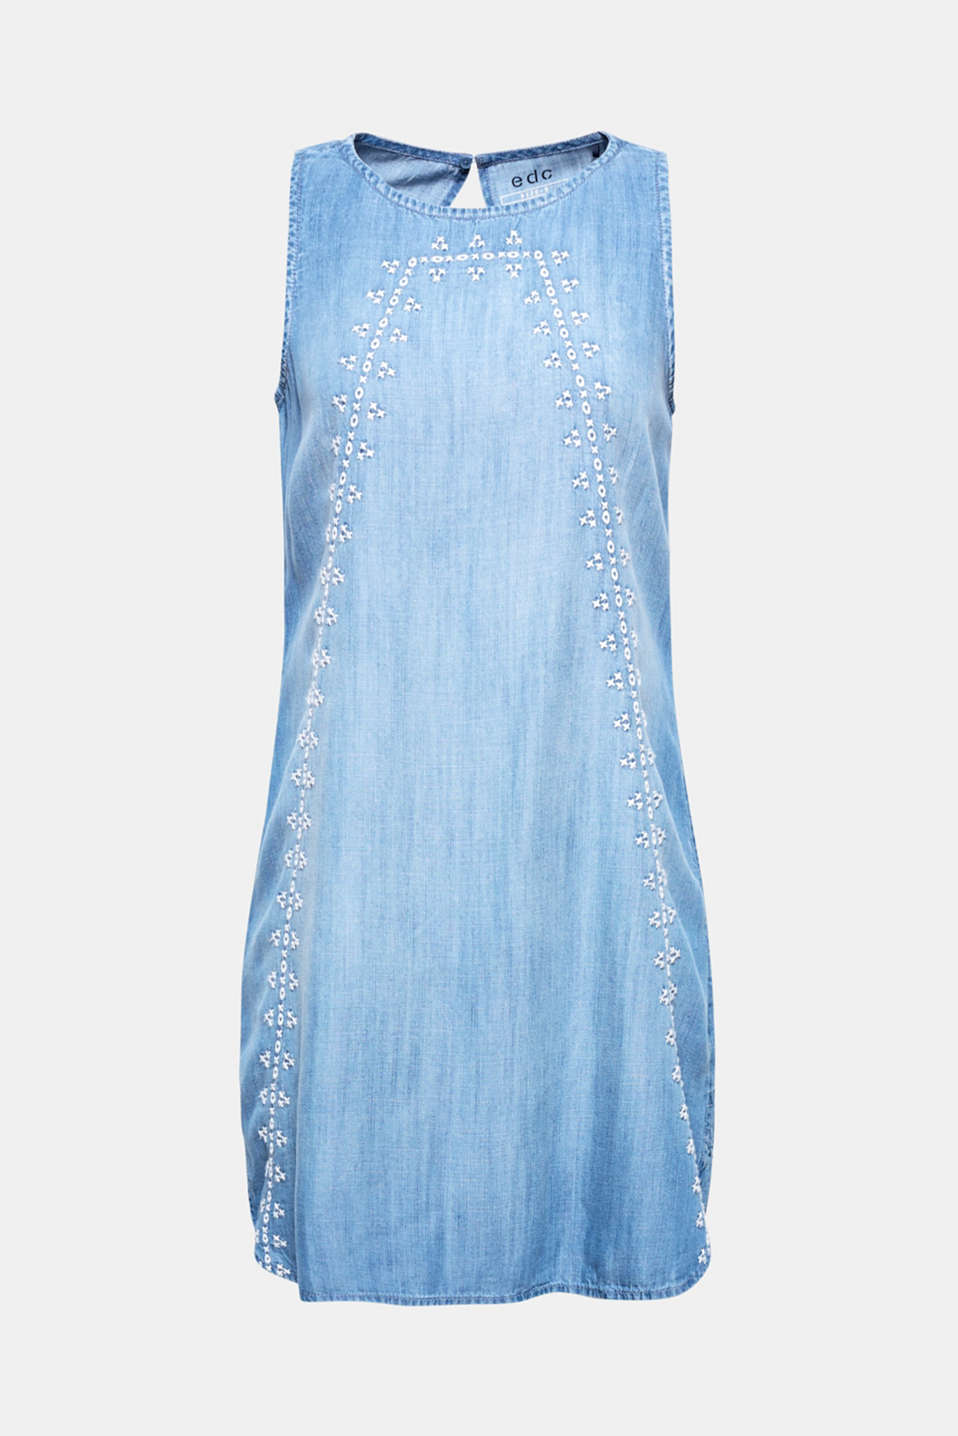 The flowing, sleeveless silhouette, lightweight denim look and tribal embroidery make this dress a perfect summer companion!